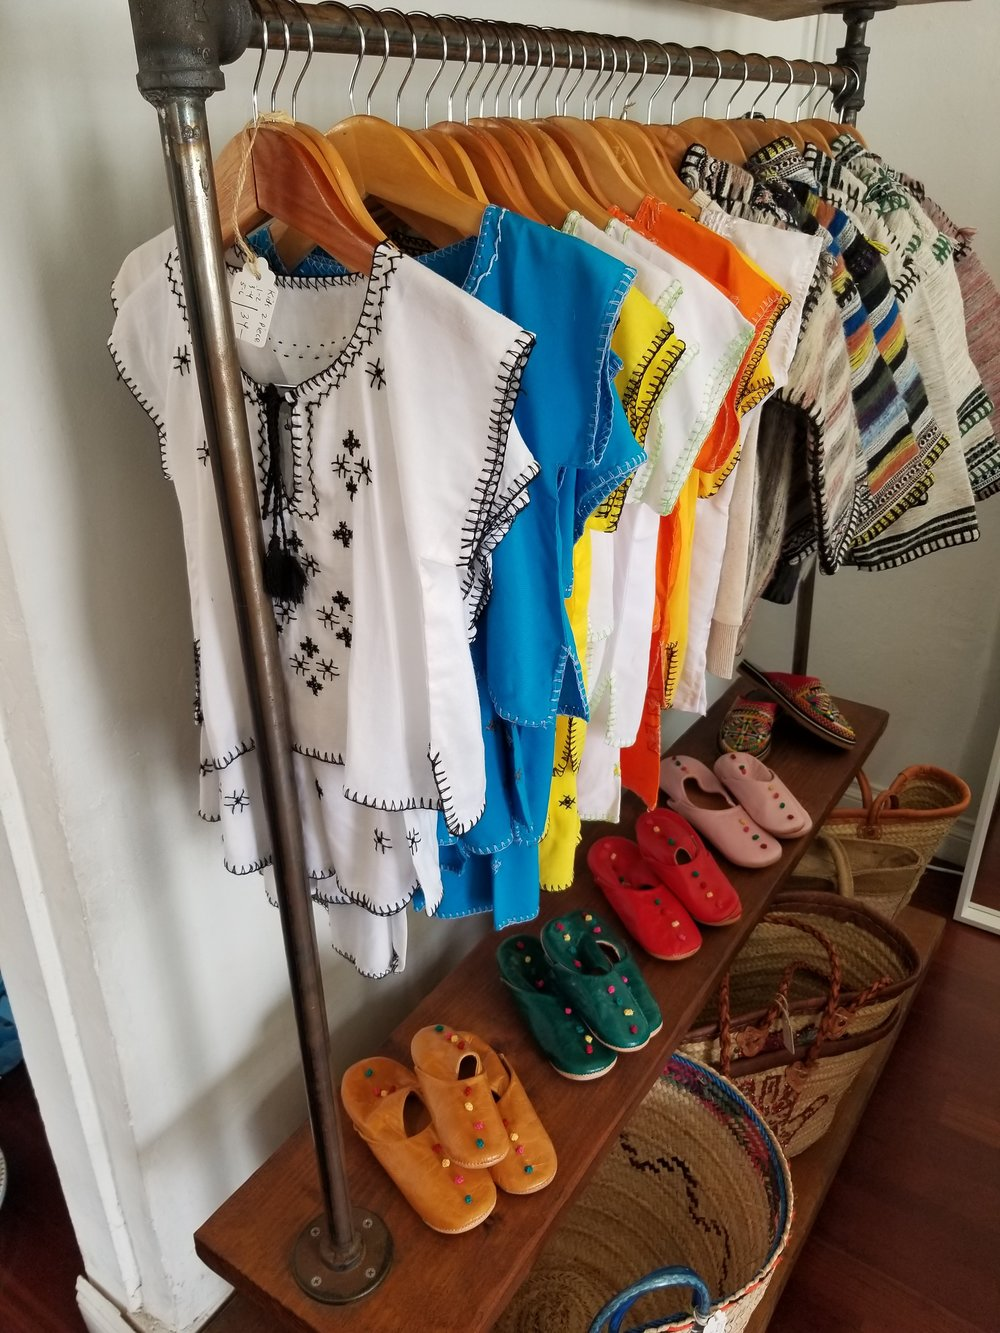 Cute little Tunisian shoes and outfits for the babies!!